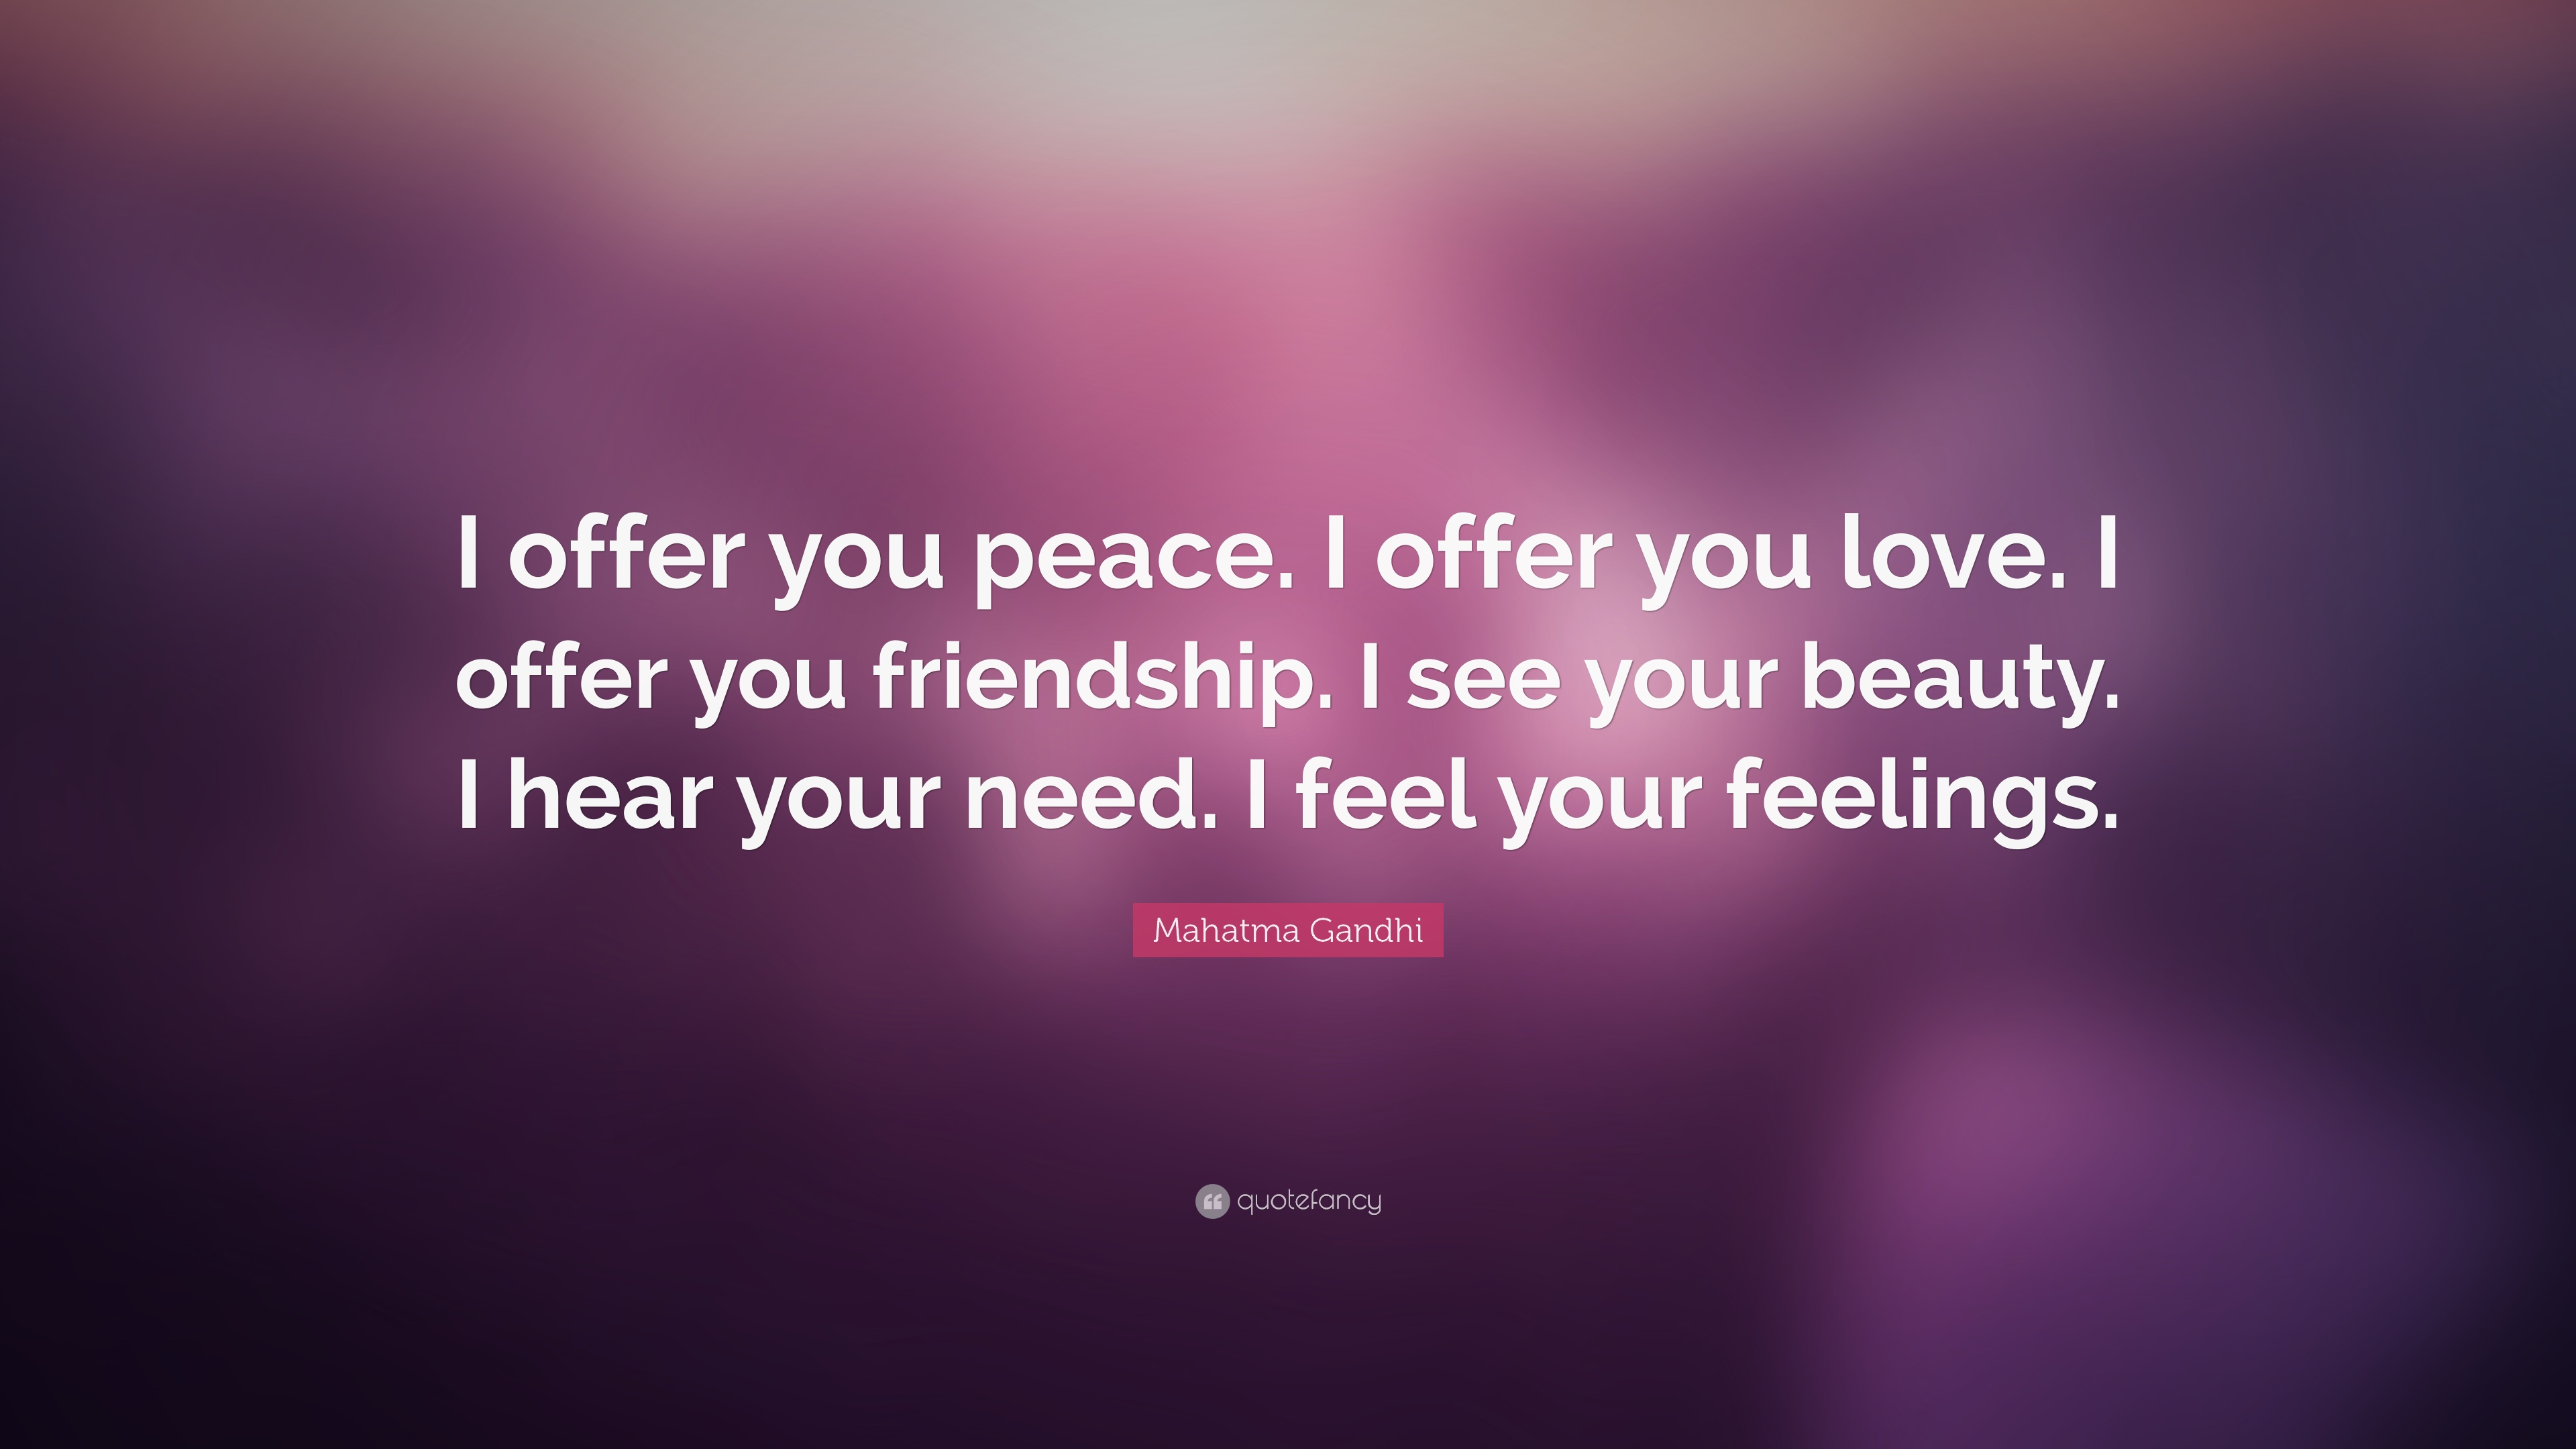 Gandhi Quotes On Love Quotesgandhi On Friendship Gandhi Quotes About Friendship